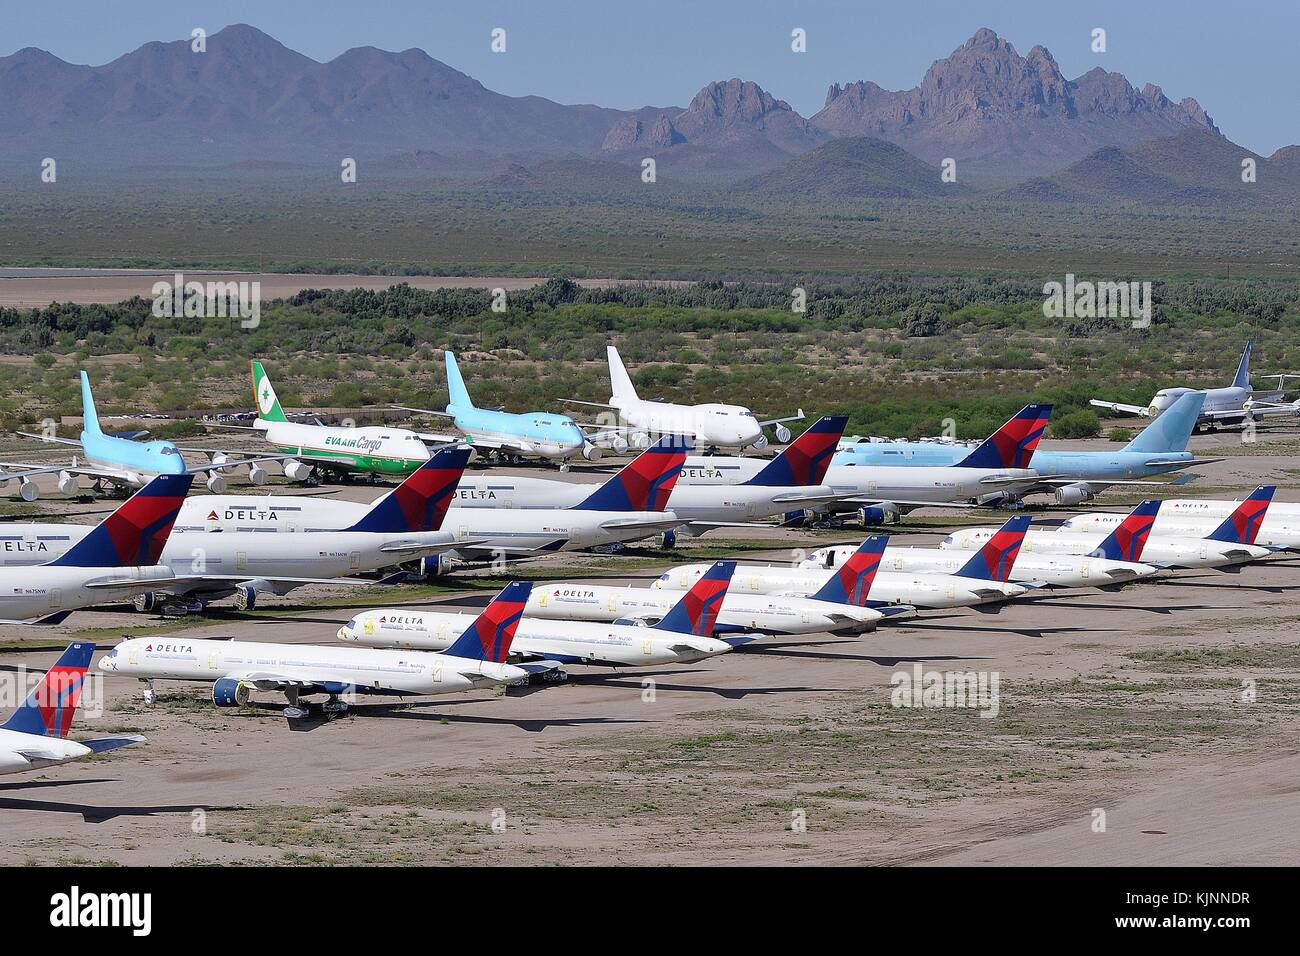 BOEING AIRLINERS STORED IN ARIZONA DESERT - Stock Image